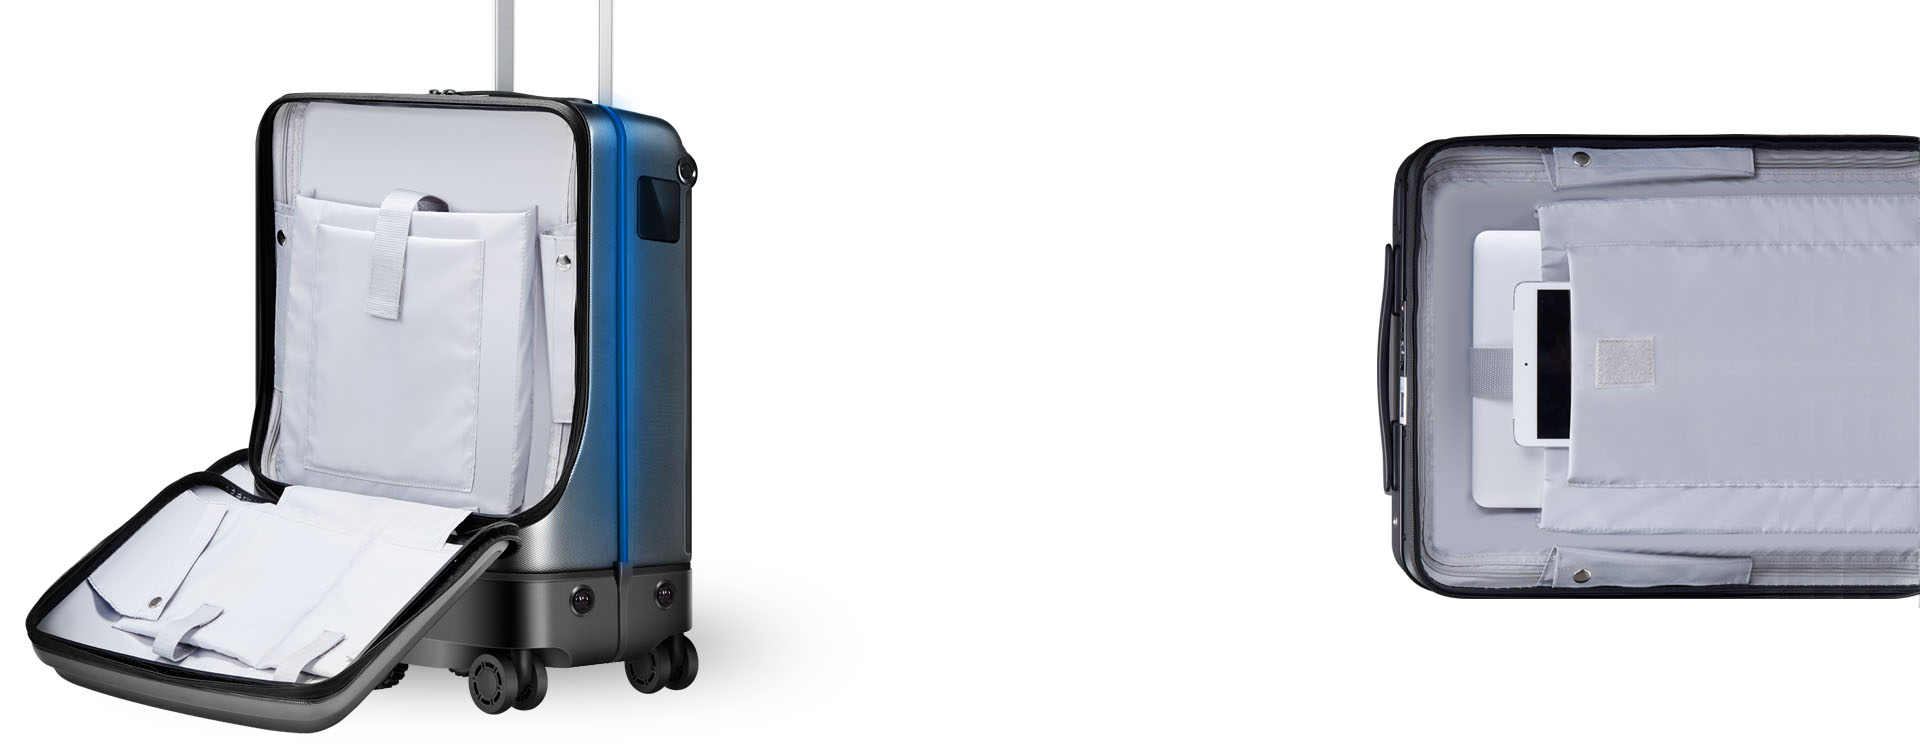 Airwheel SR5 travelmate luggage